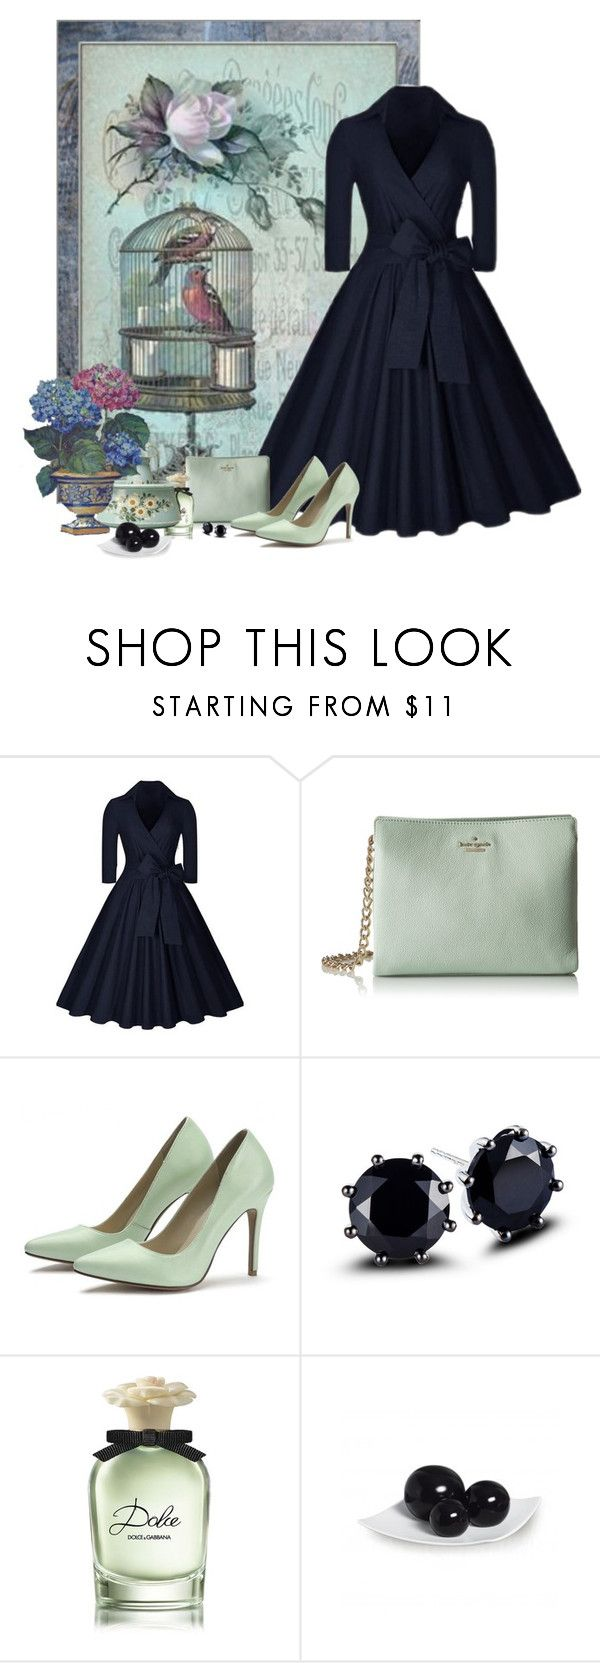 """""""Marinha & Celadon"""" by sil-engler ❤ liked on Polyvore featuring Kate Spade and Dolce&Gabbana"""